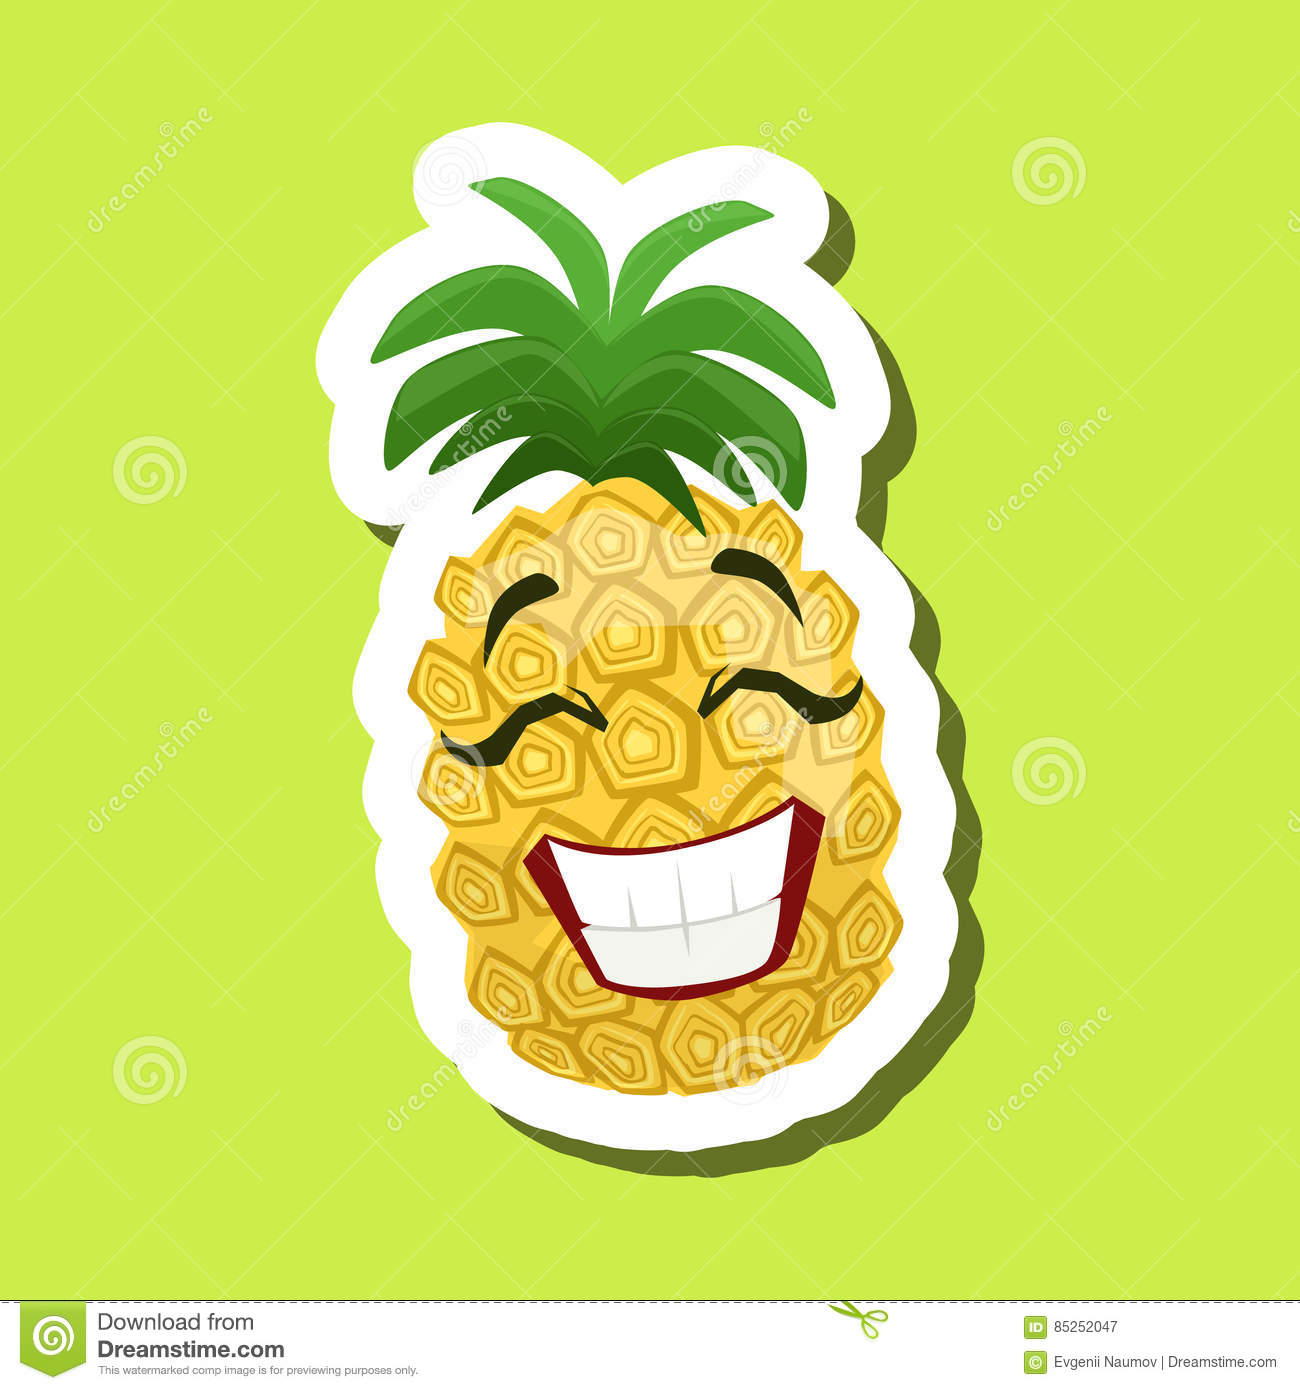 fc32b097d Pineapple Laughing, Cute Emoji Sticker On Green Background. Humanized  Tropical Fruit Character Isolated Icon In Colorful Cartoon Design.